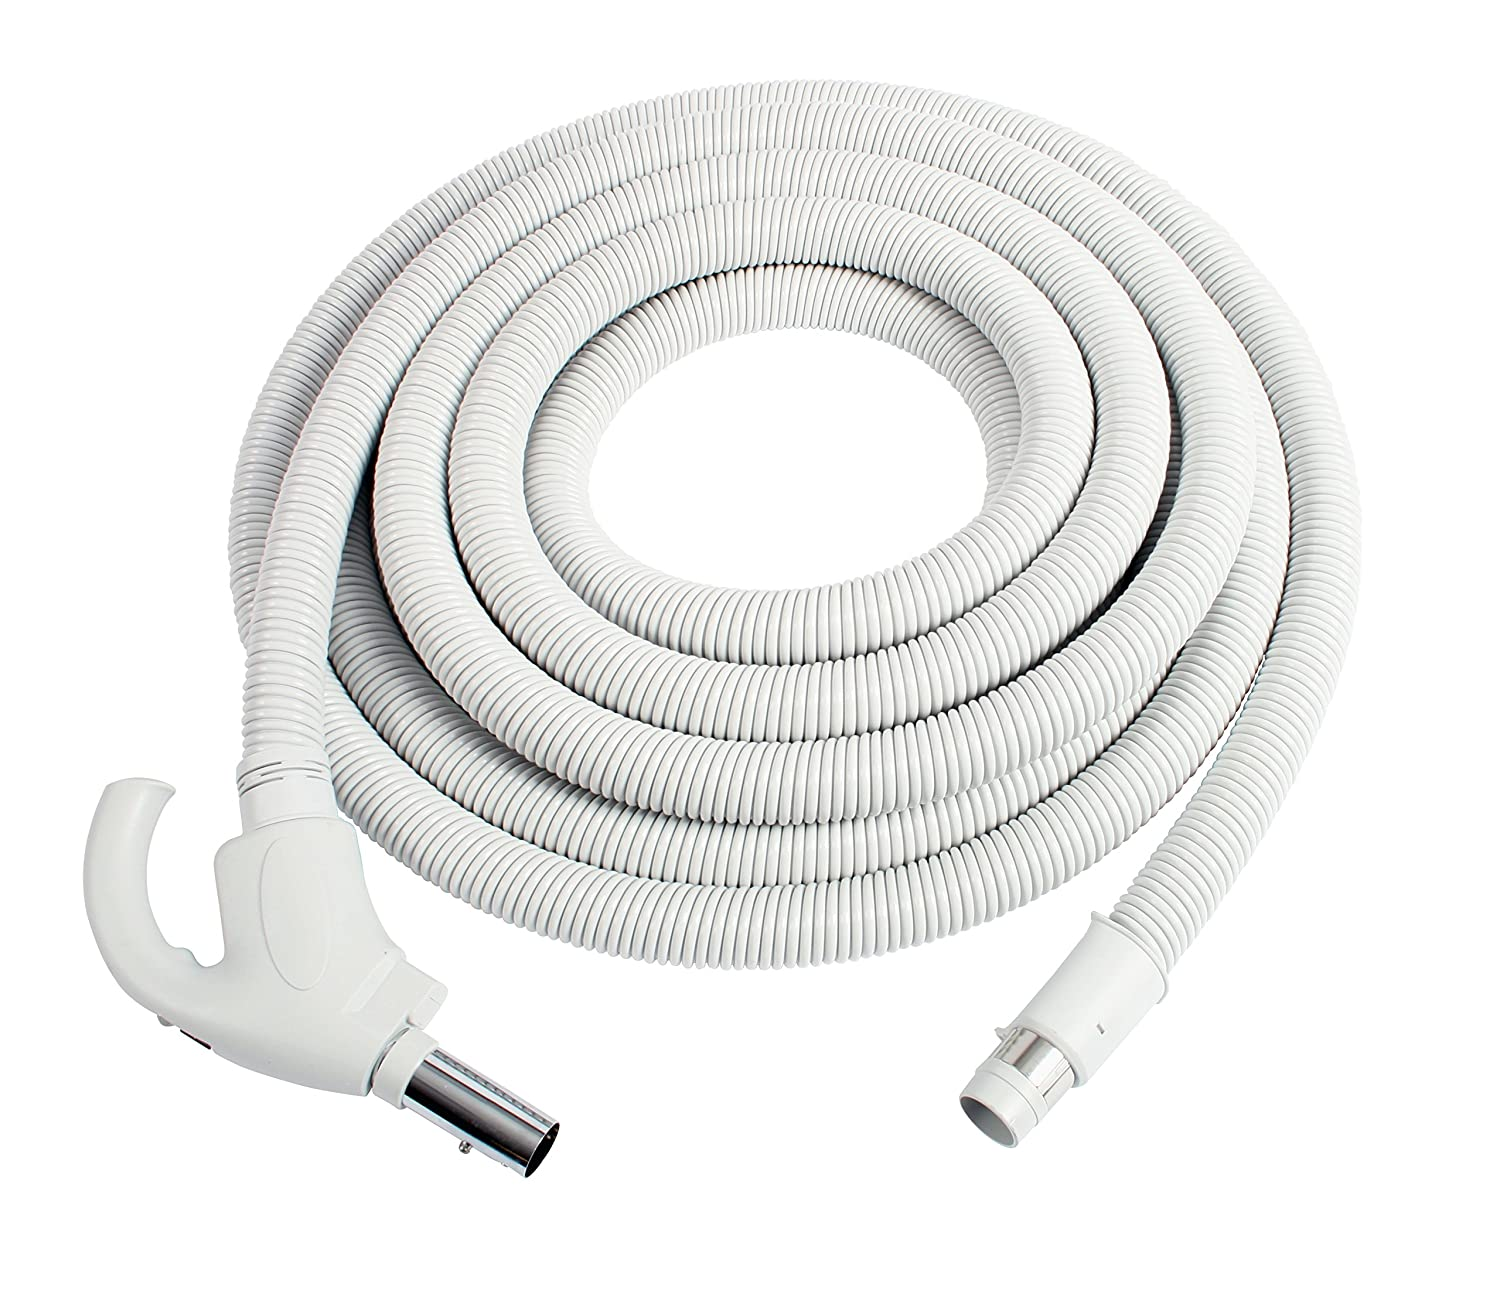 Cen-Tec Systems 93620 Low Voltage Central Vacuum Hose, Light Gray